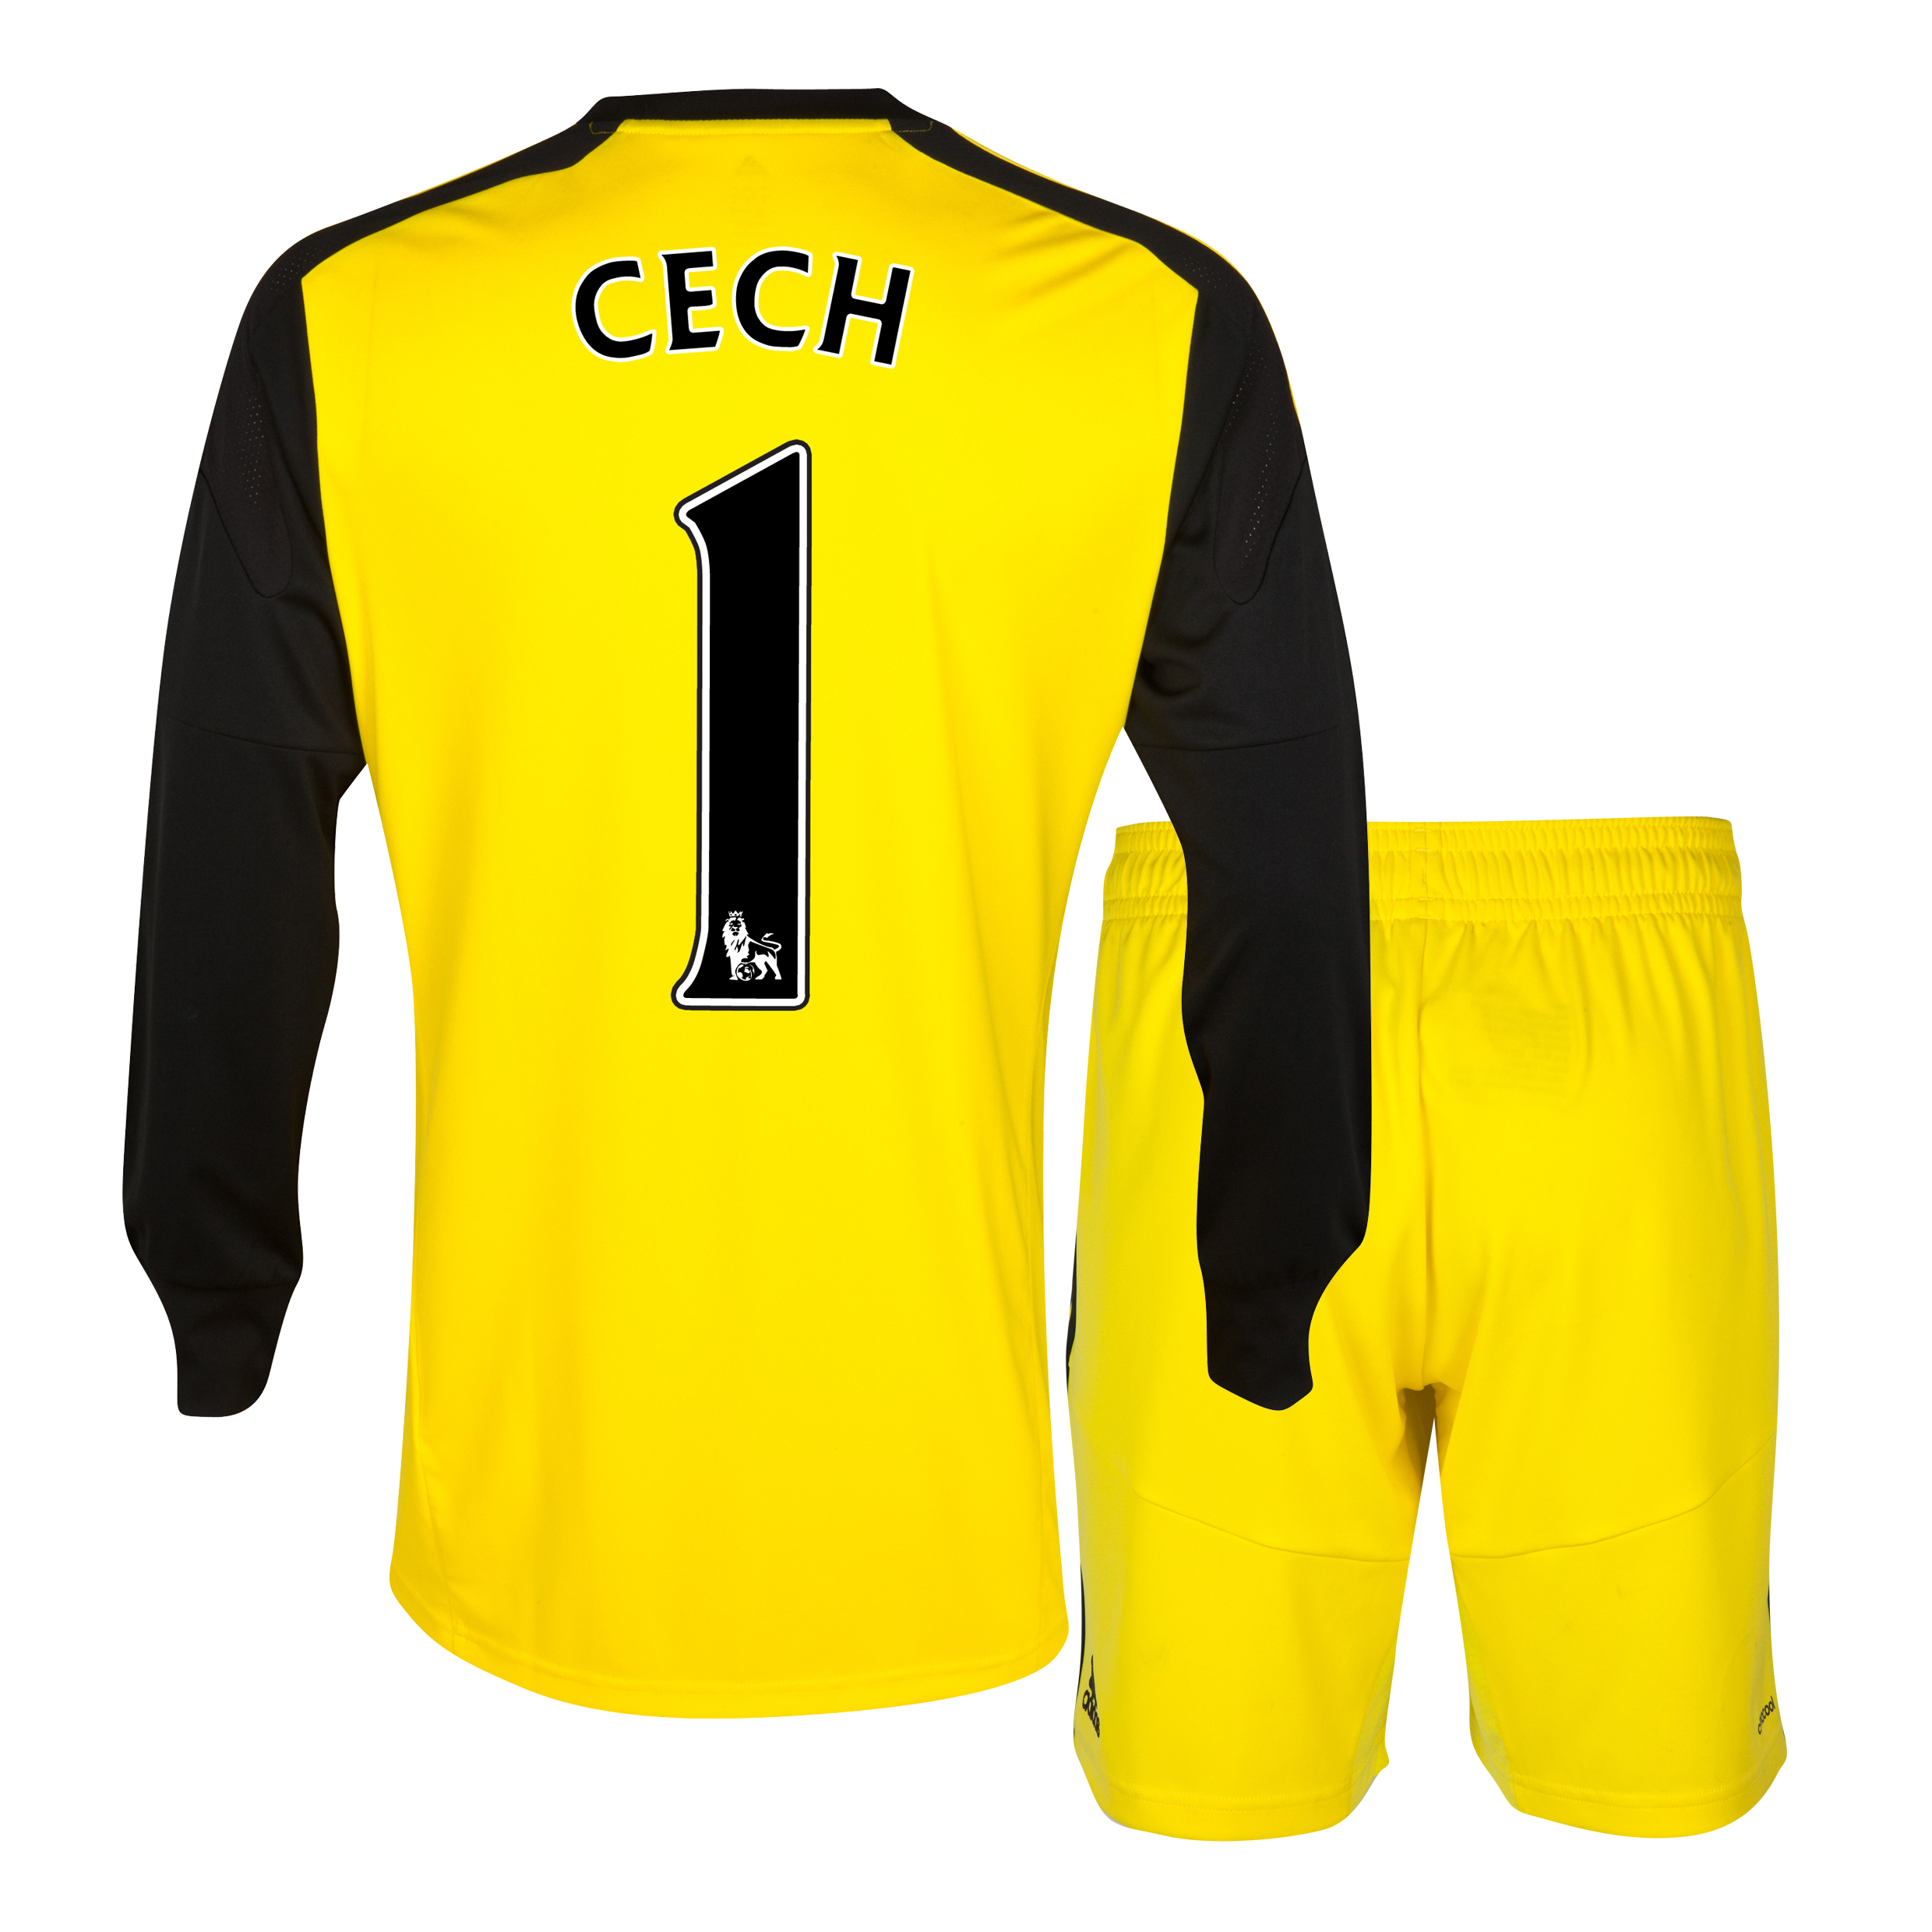 Chelsea Home Goalkeeper Mini Kit 2013/14 with Cech 1 printing